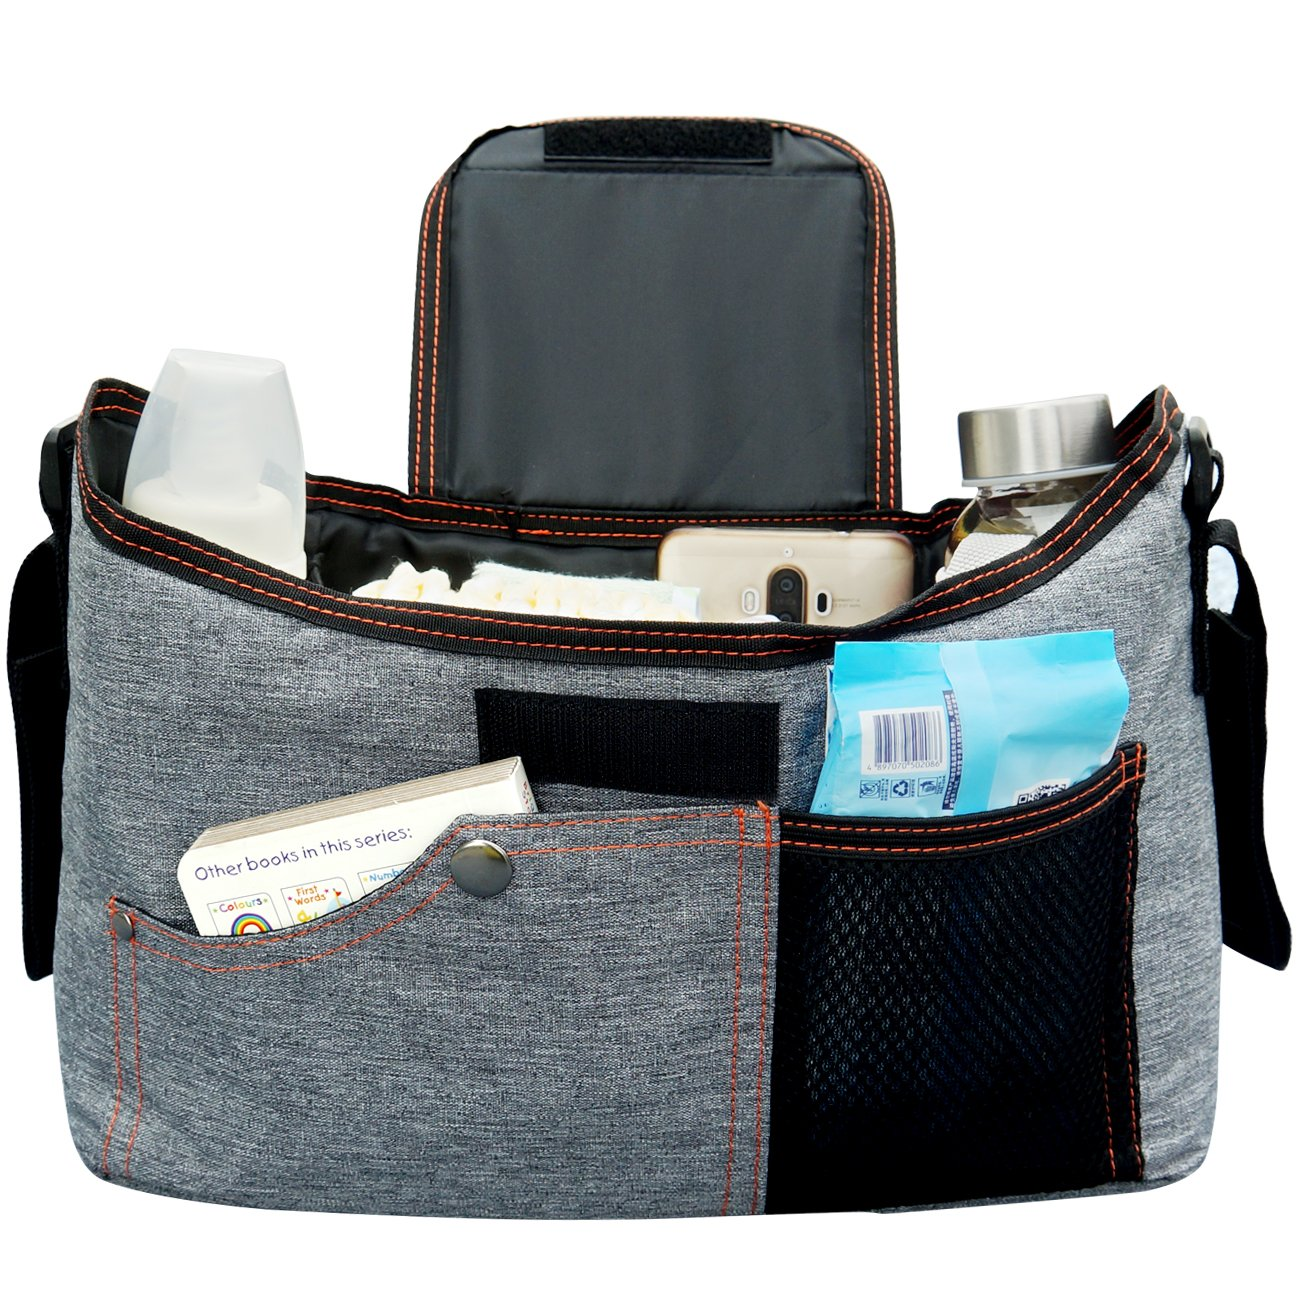 BlueSnail Stroller Bag Fits Stroller Organizer - Extra-Large Storage Space for iPhones, Wallets, Diapers, Books, Toys, iPads (Grey) by BlueSnail (Image #2)